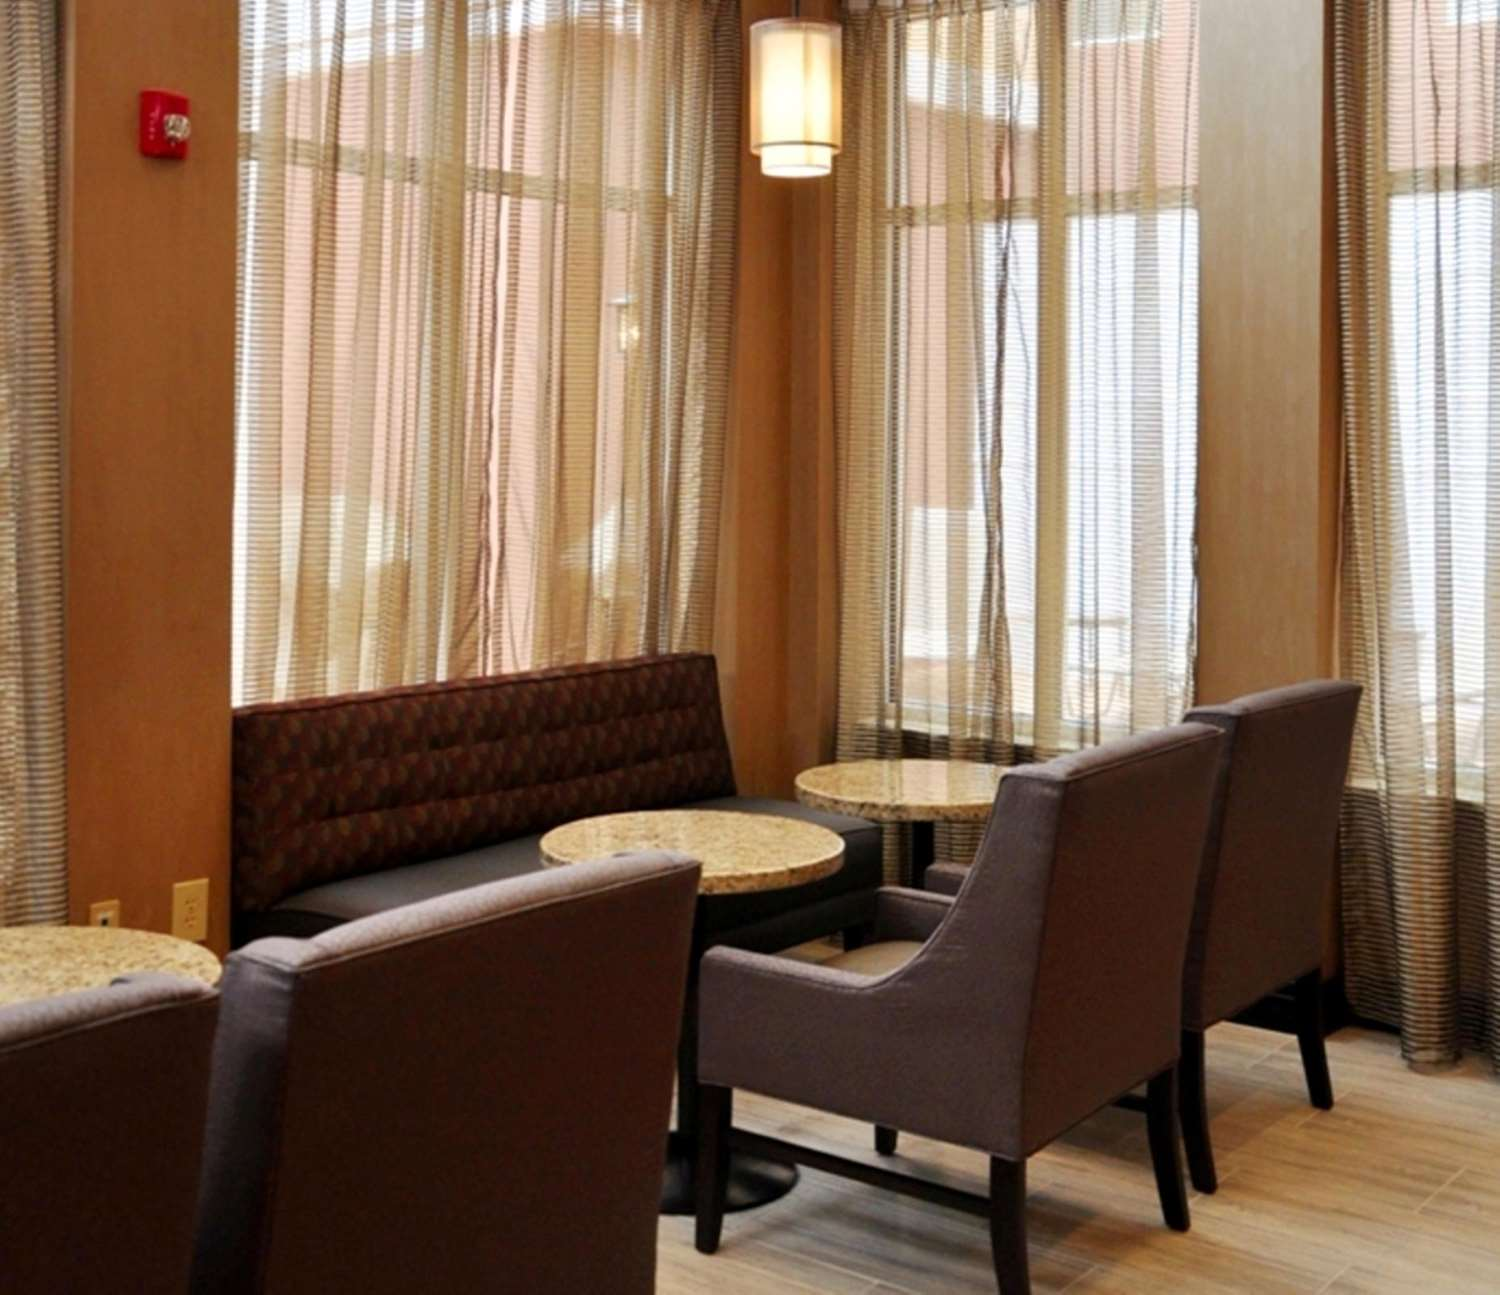 Restaurant - Homewood Suites by Hilton Doylestown